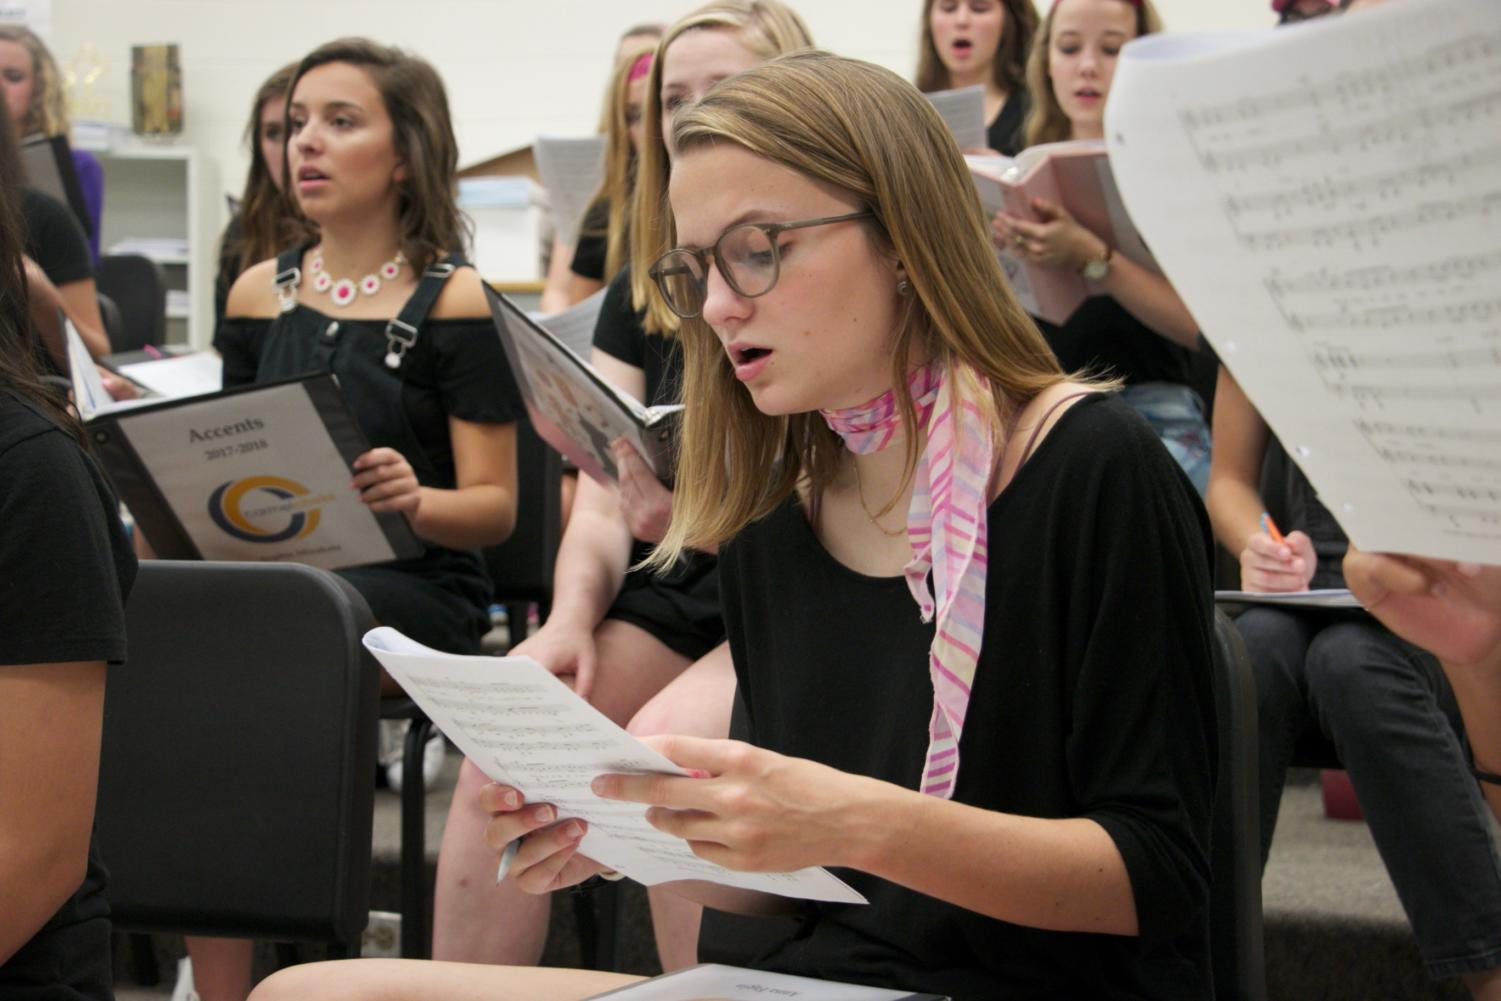 Senior Anna Fagin reads music for her Cabaret performance. Fagin auditioned with Accents Alyssa Easton and Cory Steele for a spot in the show on Oct. 21.